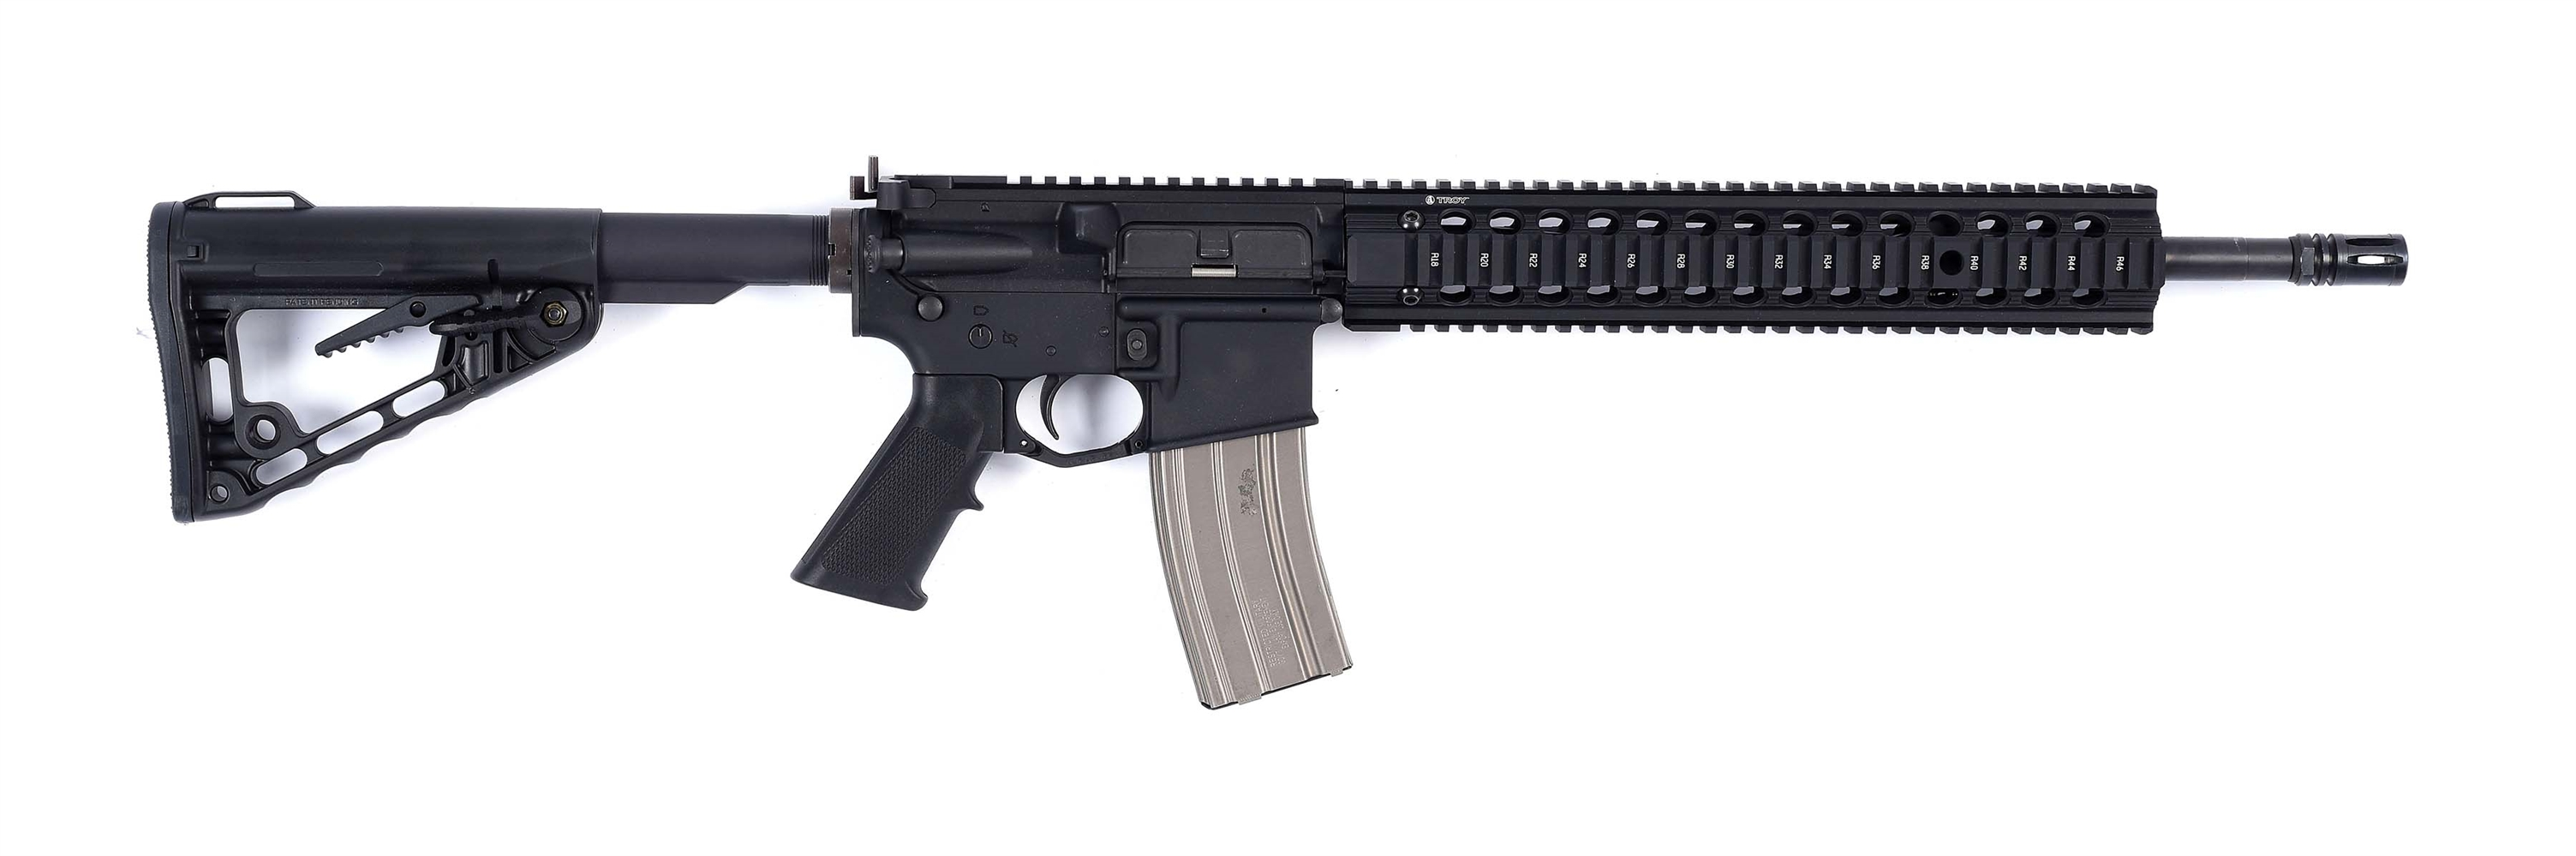 (M) MMC Armory Model  MA-15 Semi-Automatic Rifle.